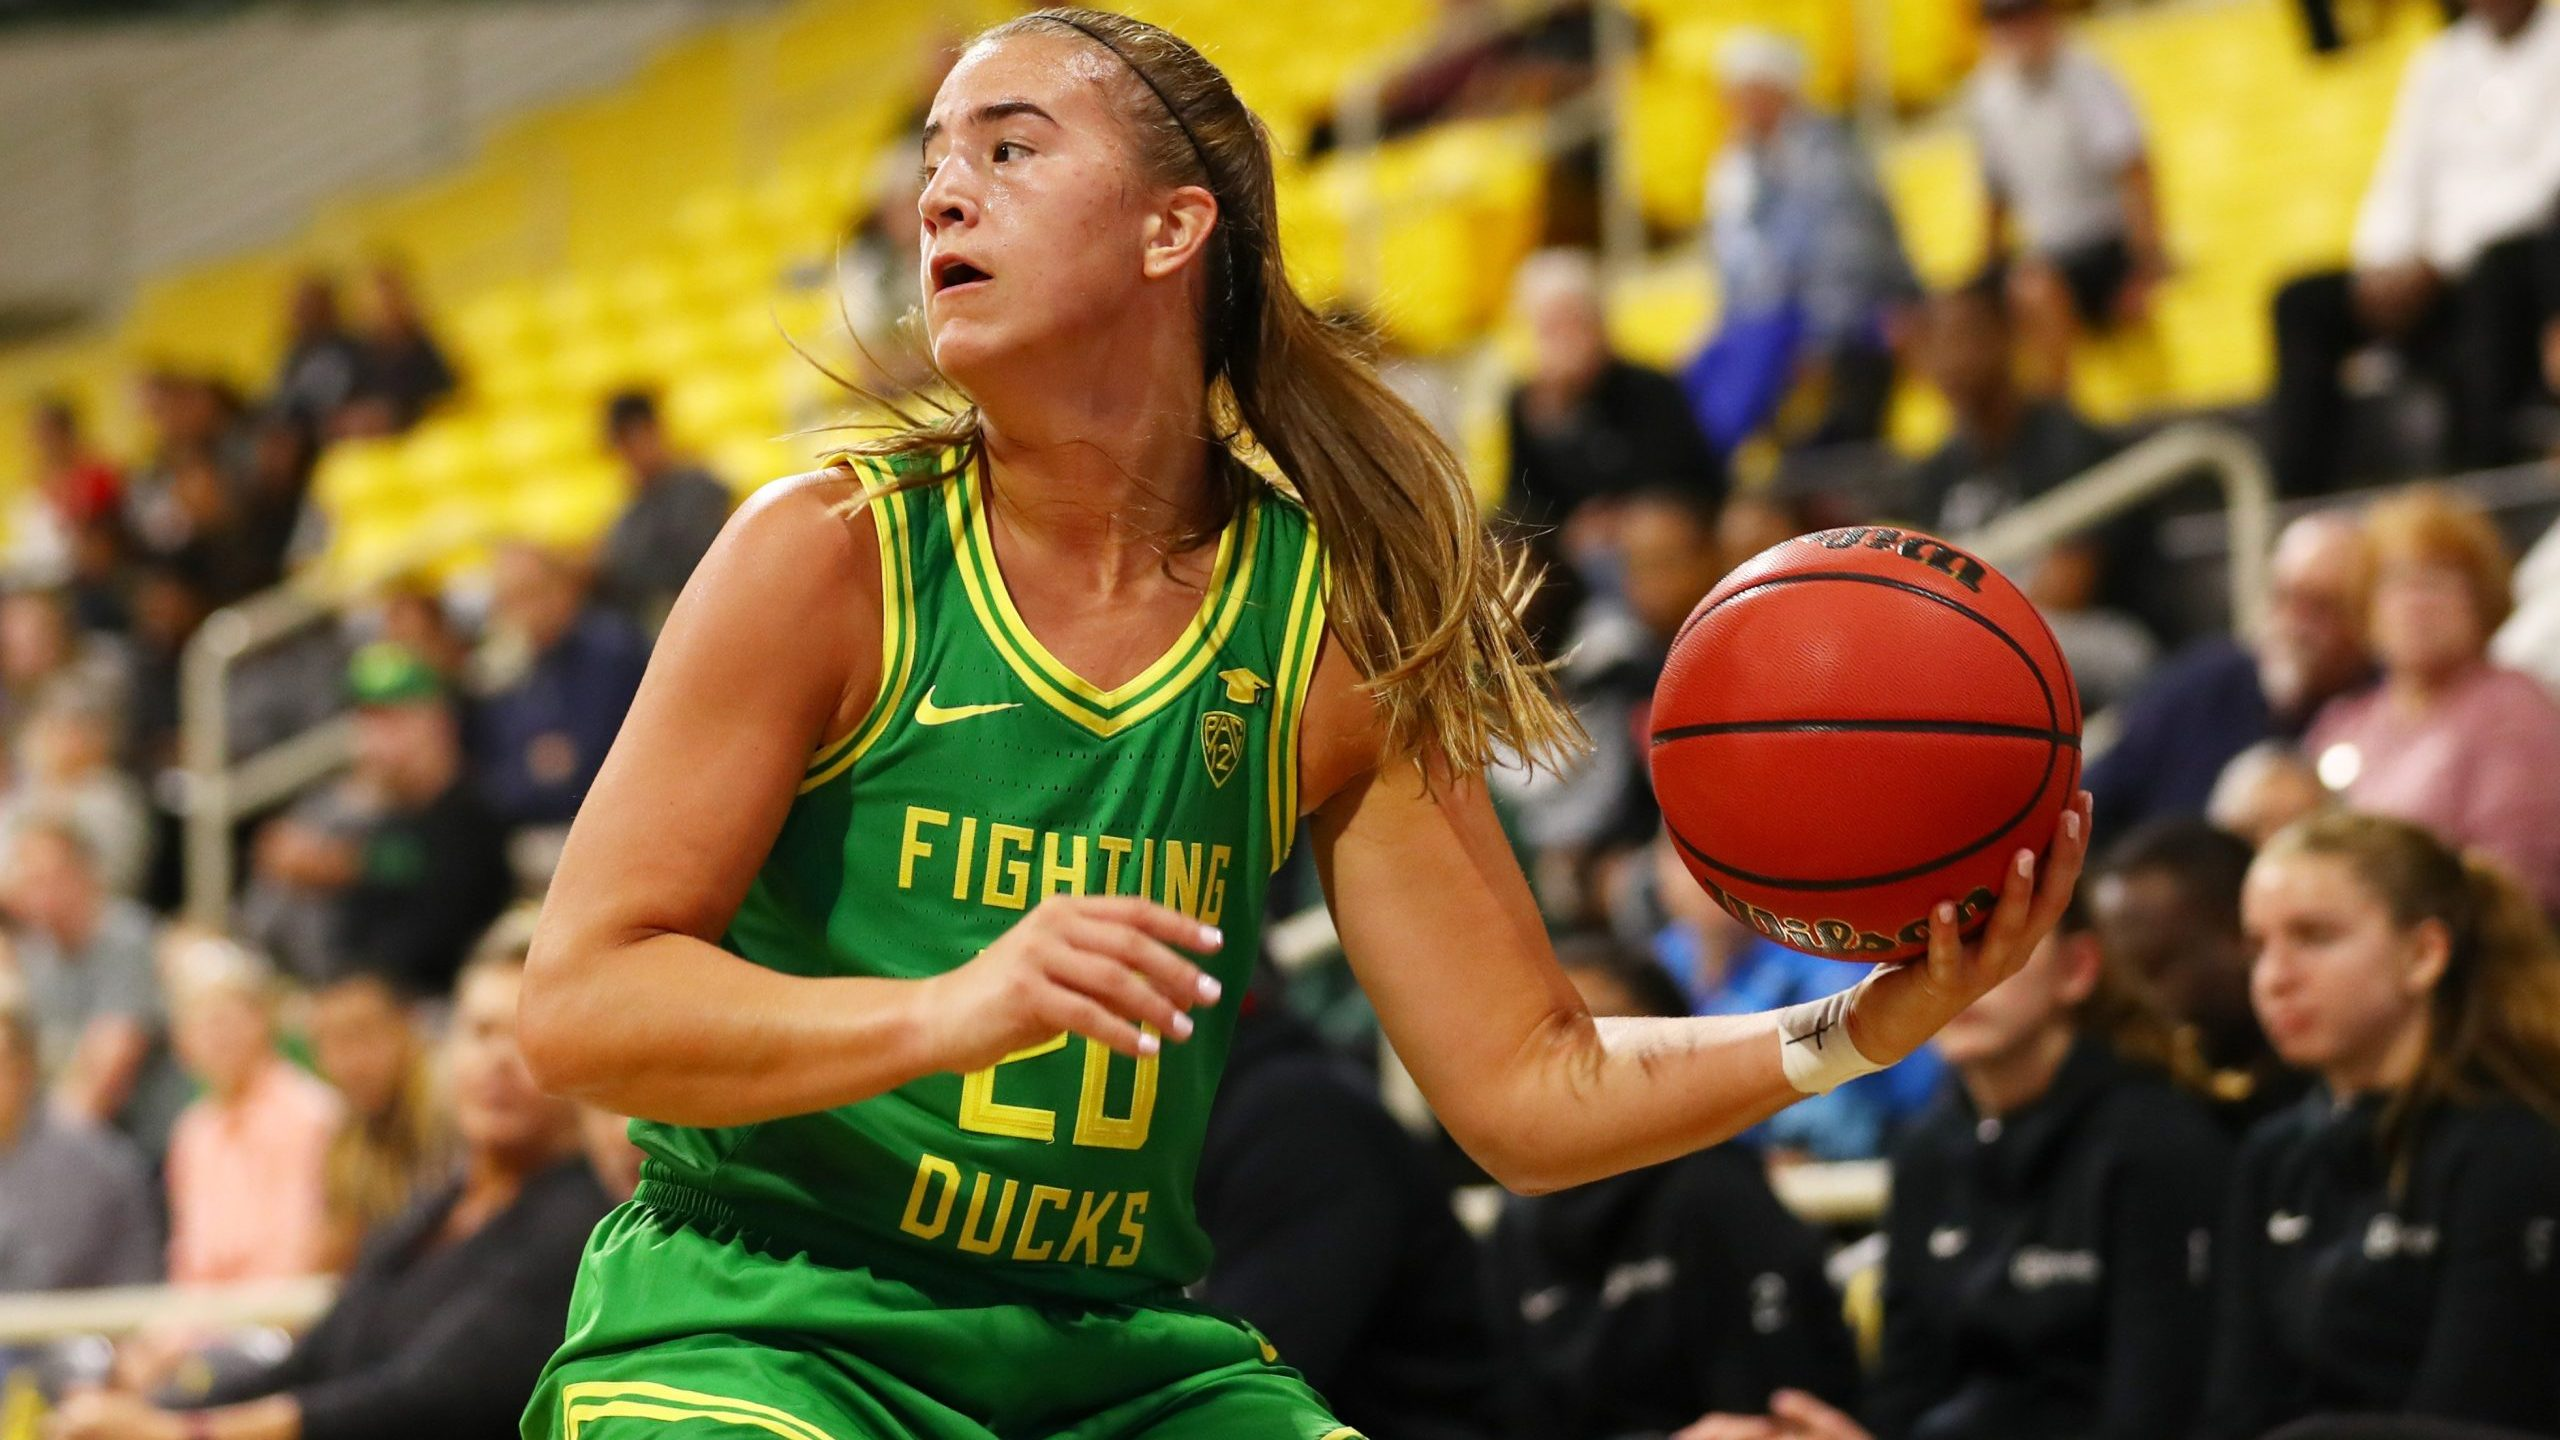 Sabrina Ionescu of the Oregon Ducks moves the ball during a game against Long Beach State at Walter Pyramid on Dec. 14, 2019. (Credit: Joe Scarnici / Getty Images)